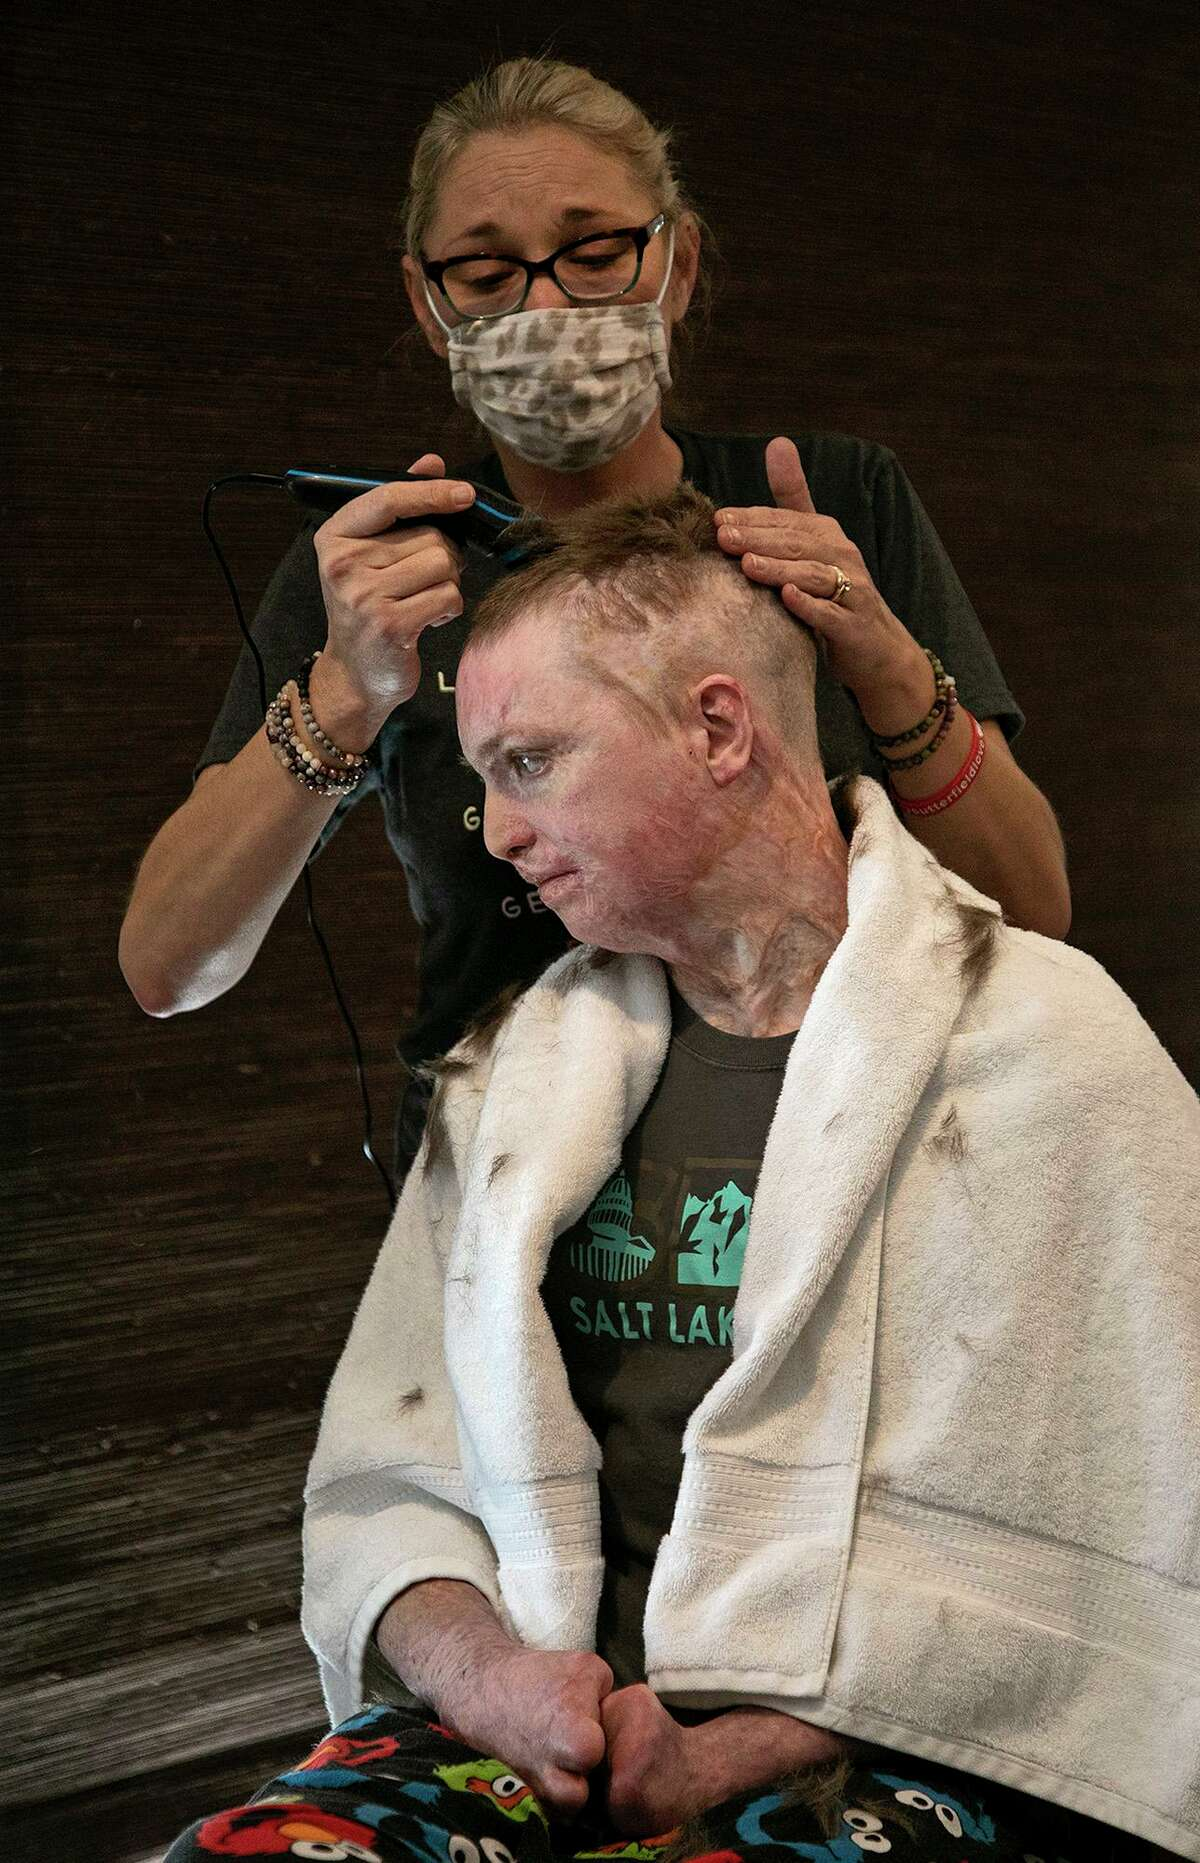 """Deona Jo """"DJ"""" Sutterfield trims her son Zachary's hair at their San Angelo home on Monday, Feb. 1, 2021. DJ Sutterfield has been named the 2021 Texas Mother of the Year by the national nonprofit American Mothers, Inc."""